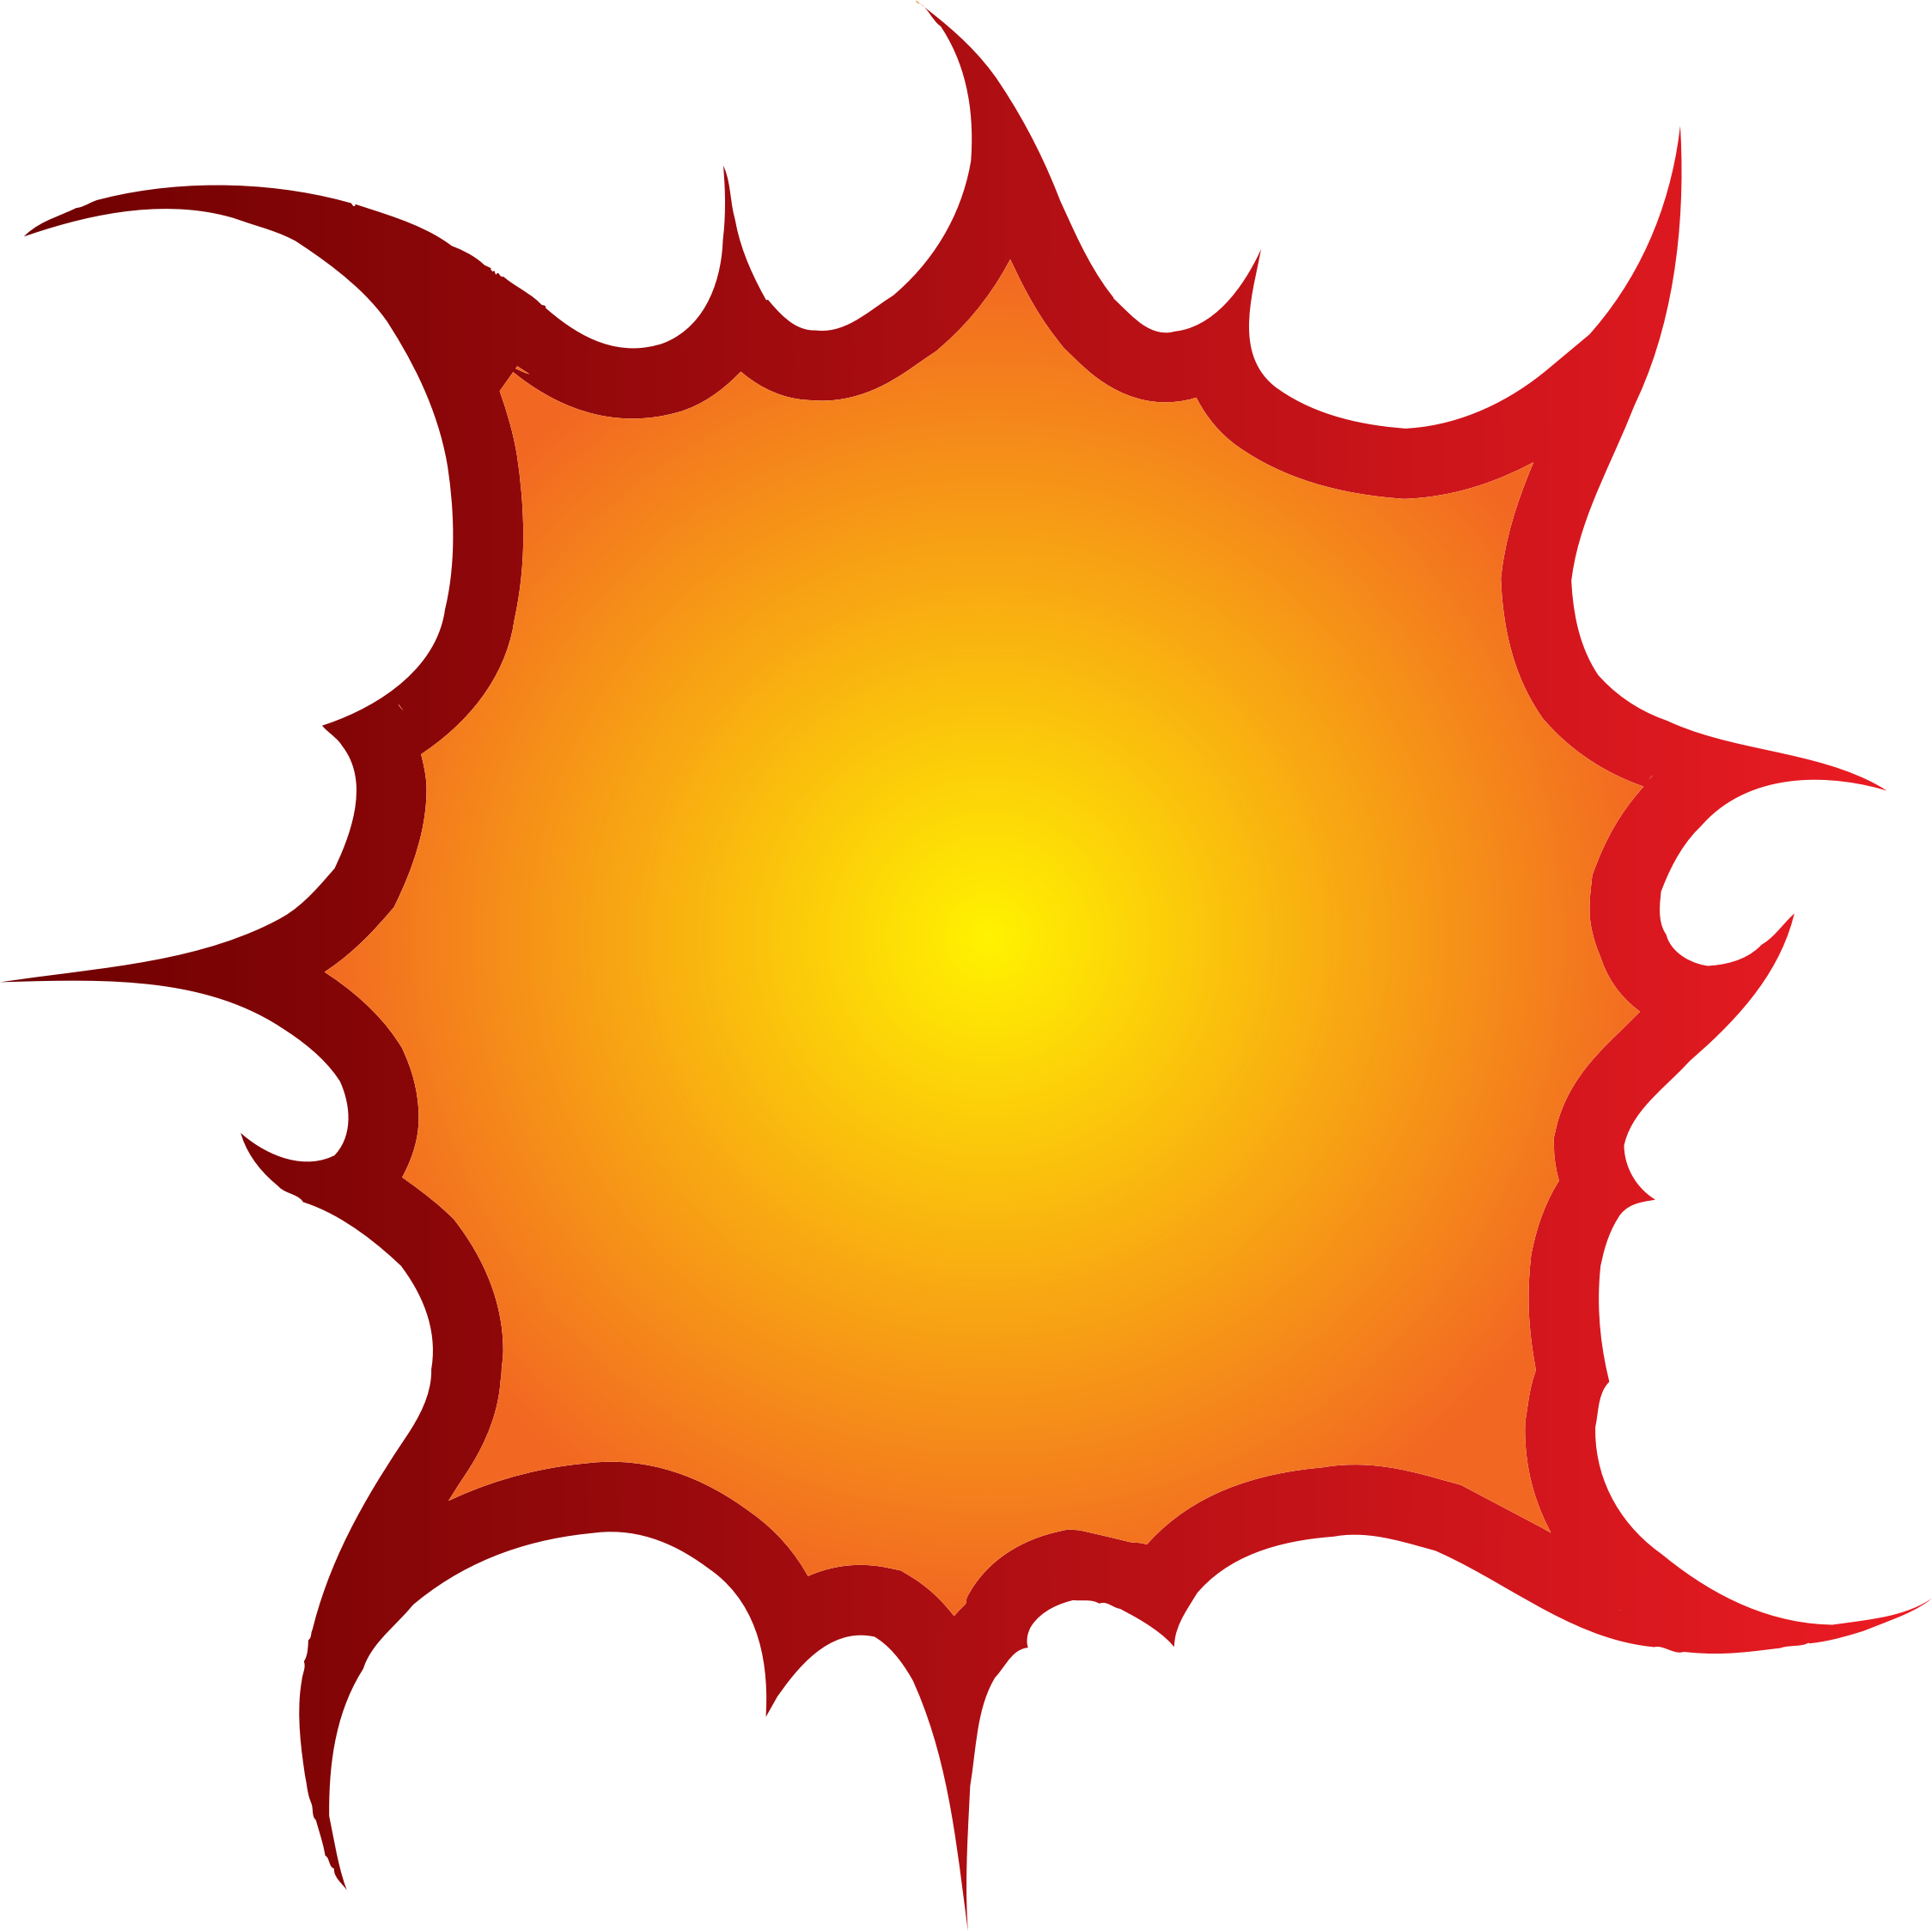 2249x2248 Image For Free Explosion 26 Clip Art Explosion Clip Art Free